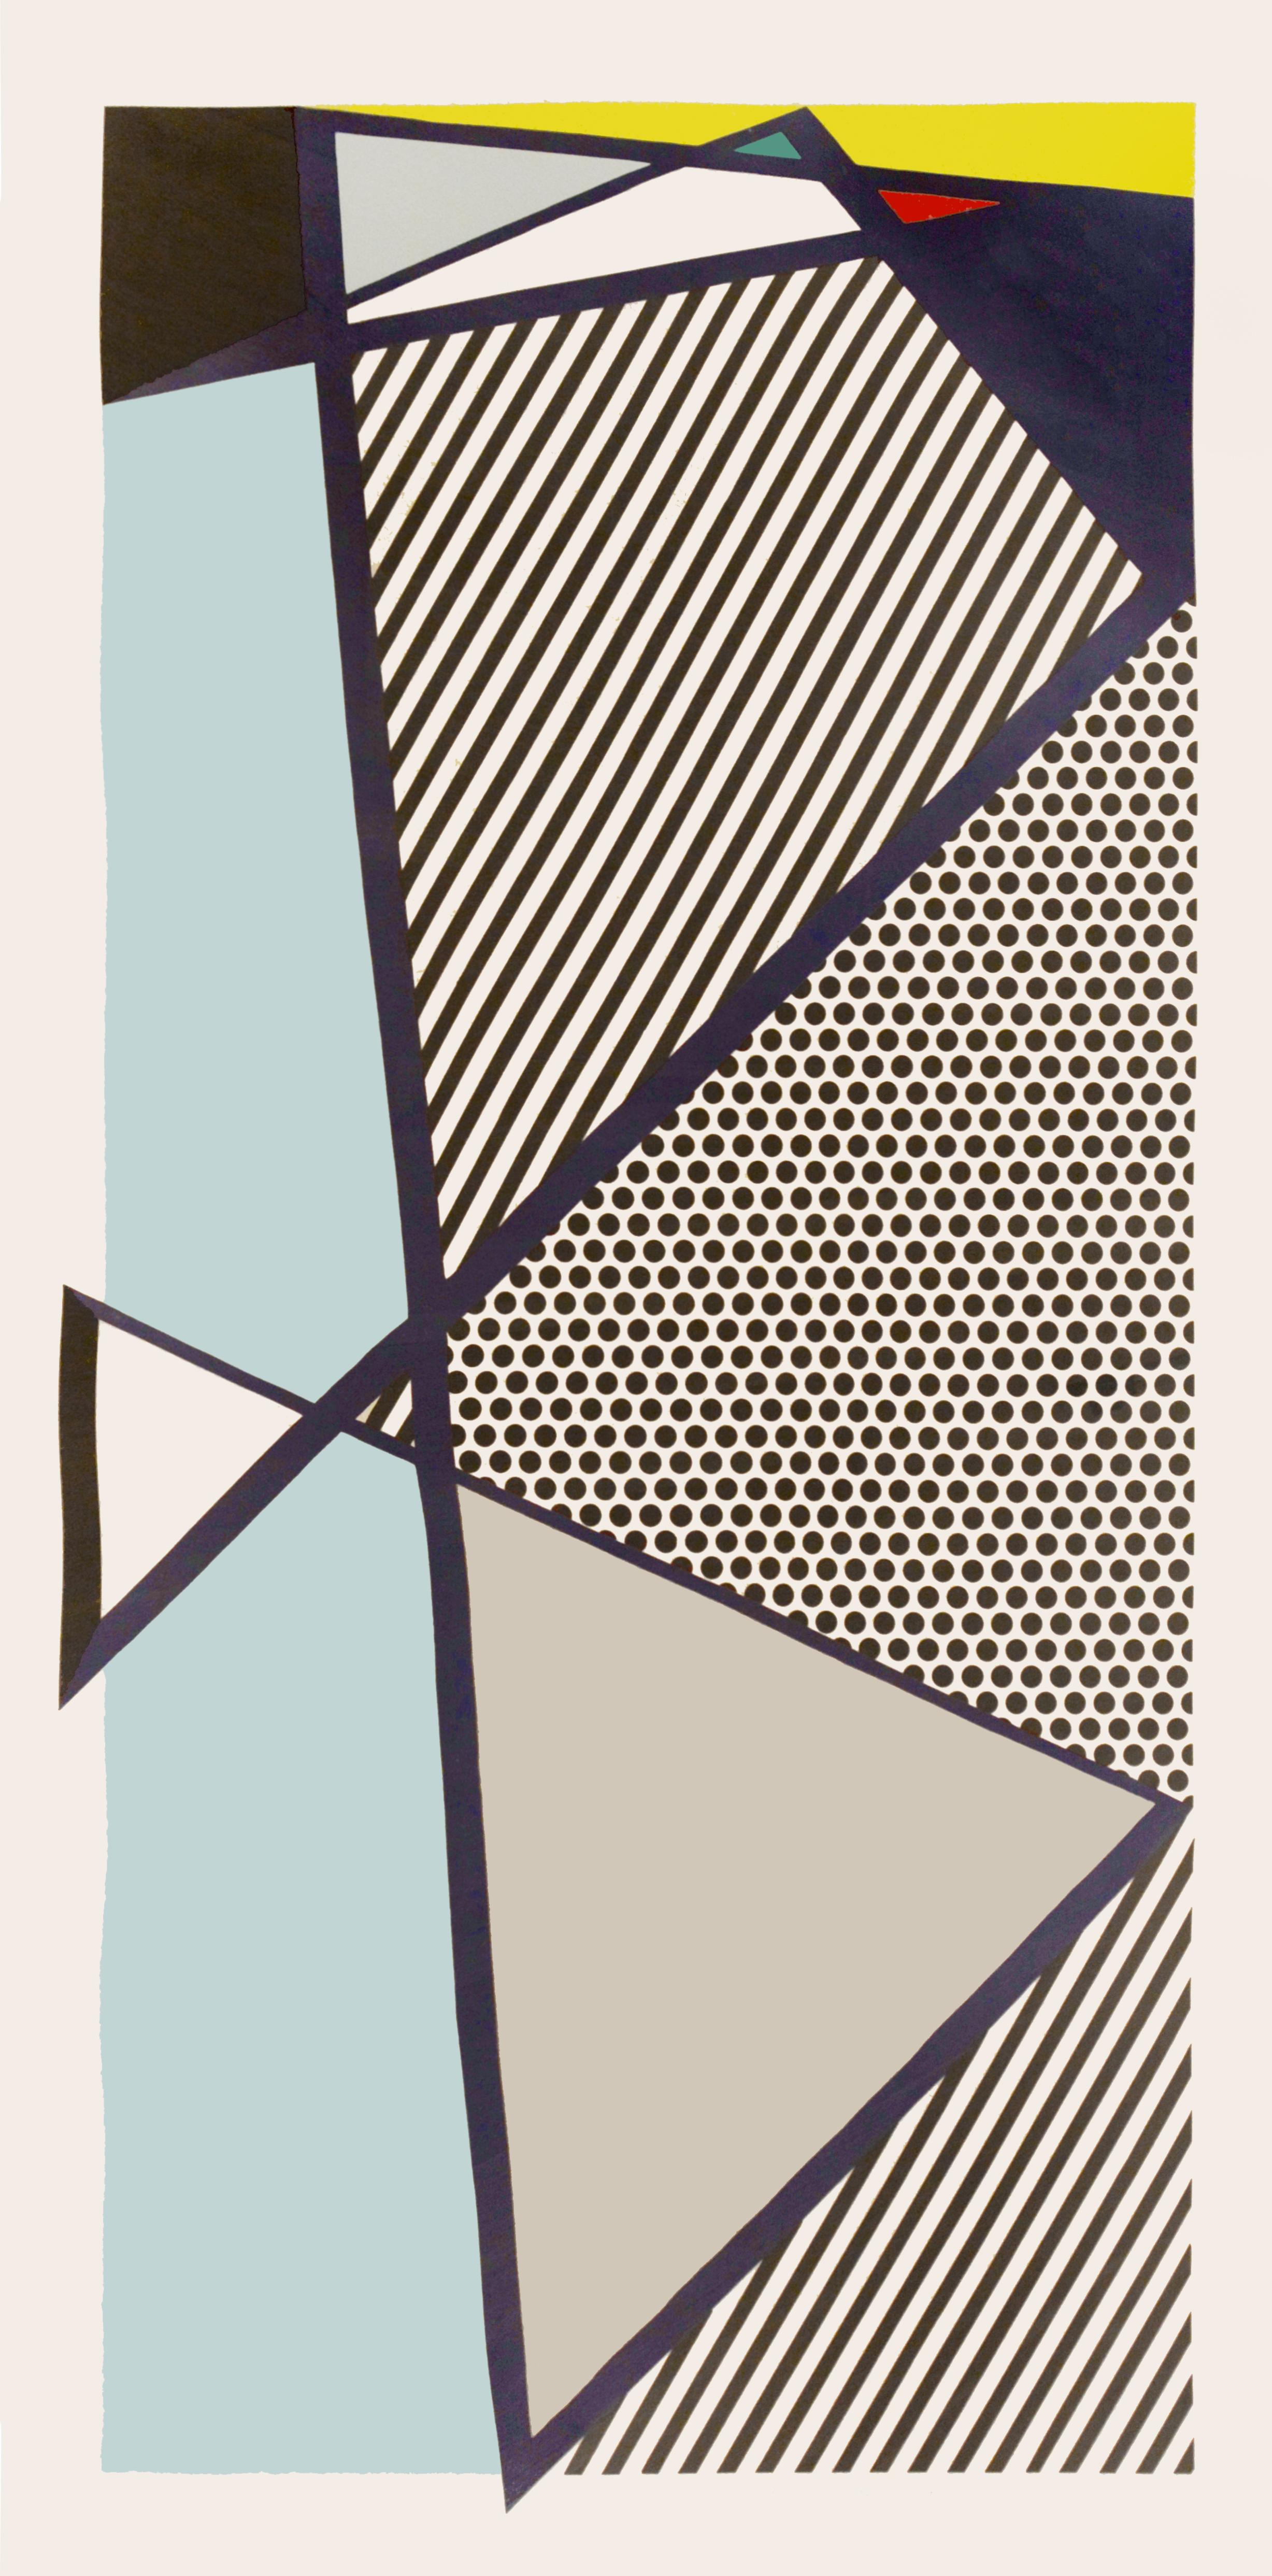 Roy Lichtenstein, Imperfect Print for B.A.M, woodcut, screenprint, 1987, signed